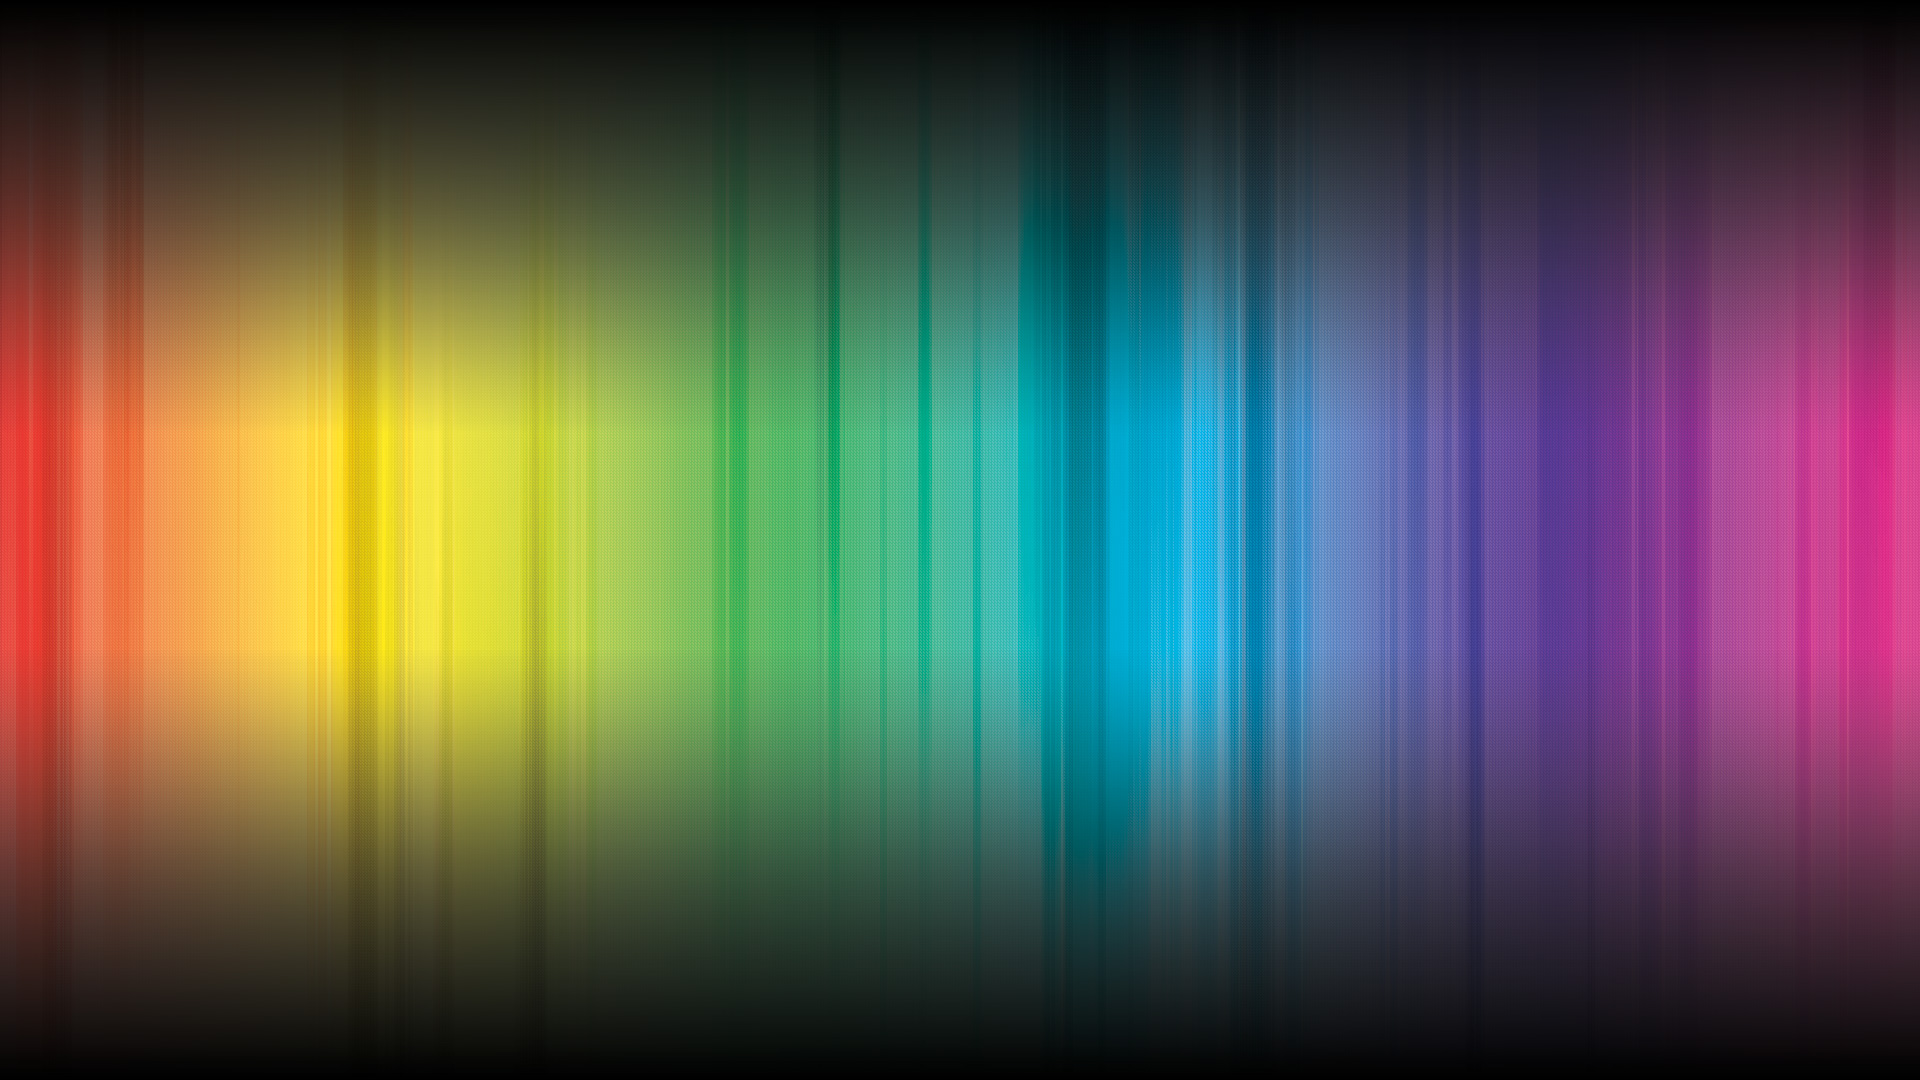 rainbow spectrum hd, hd artist, 4k wallpapers, images, backgrounds